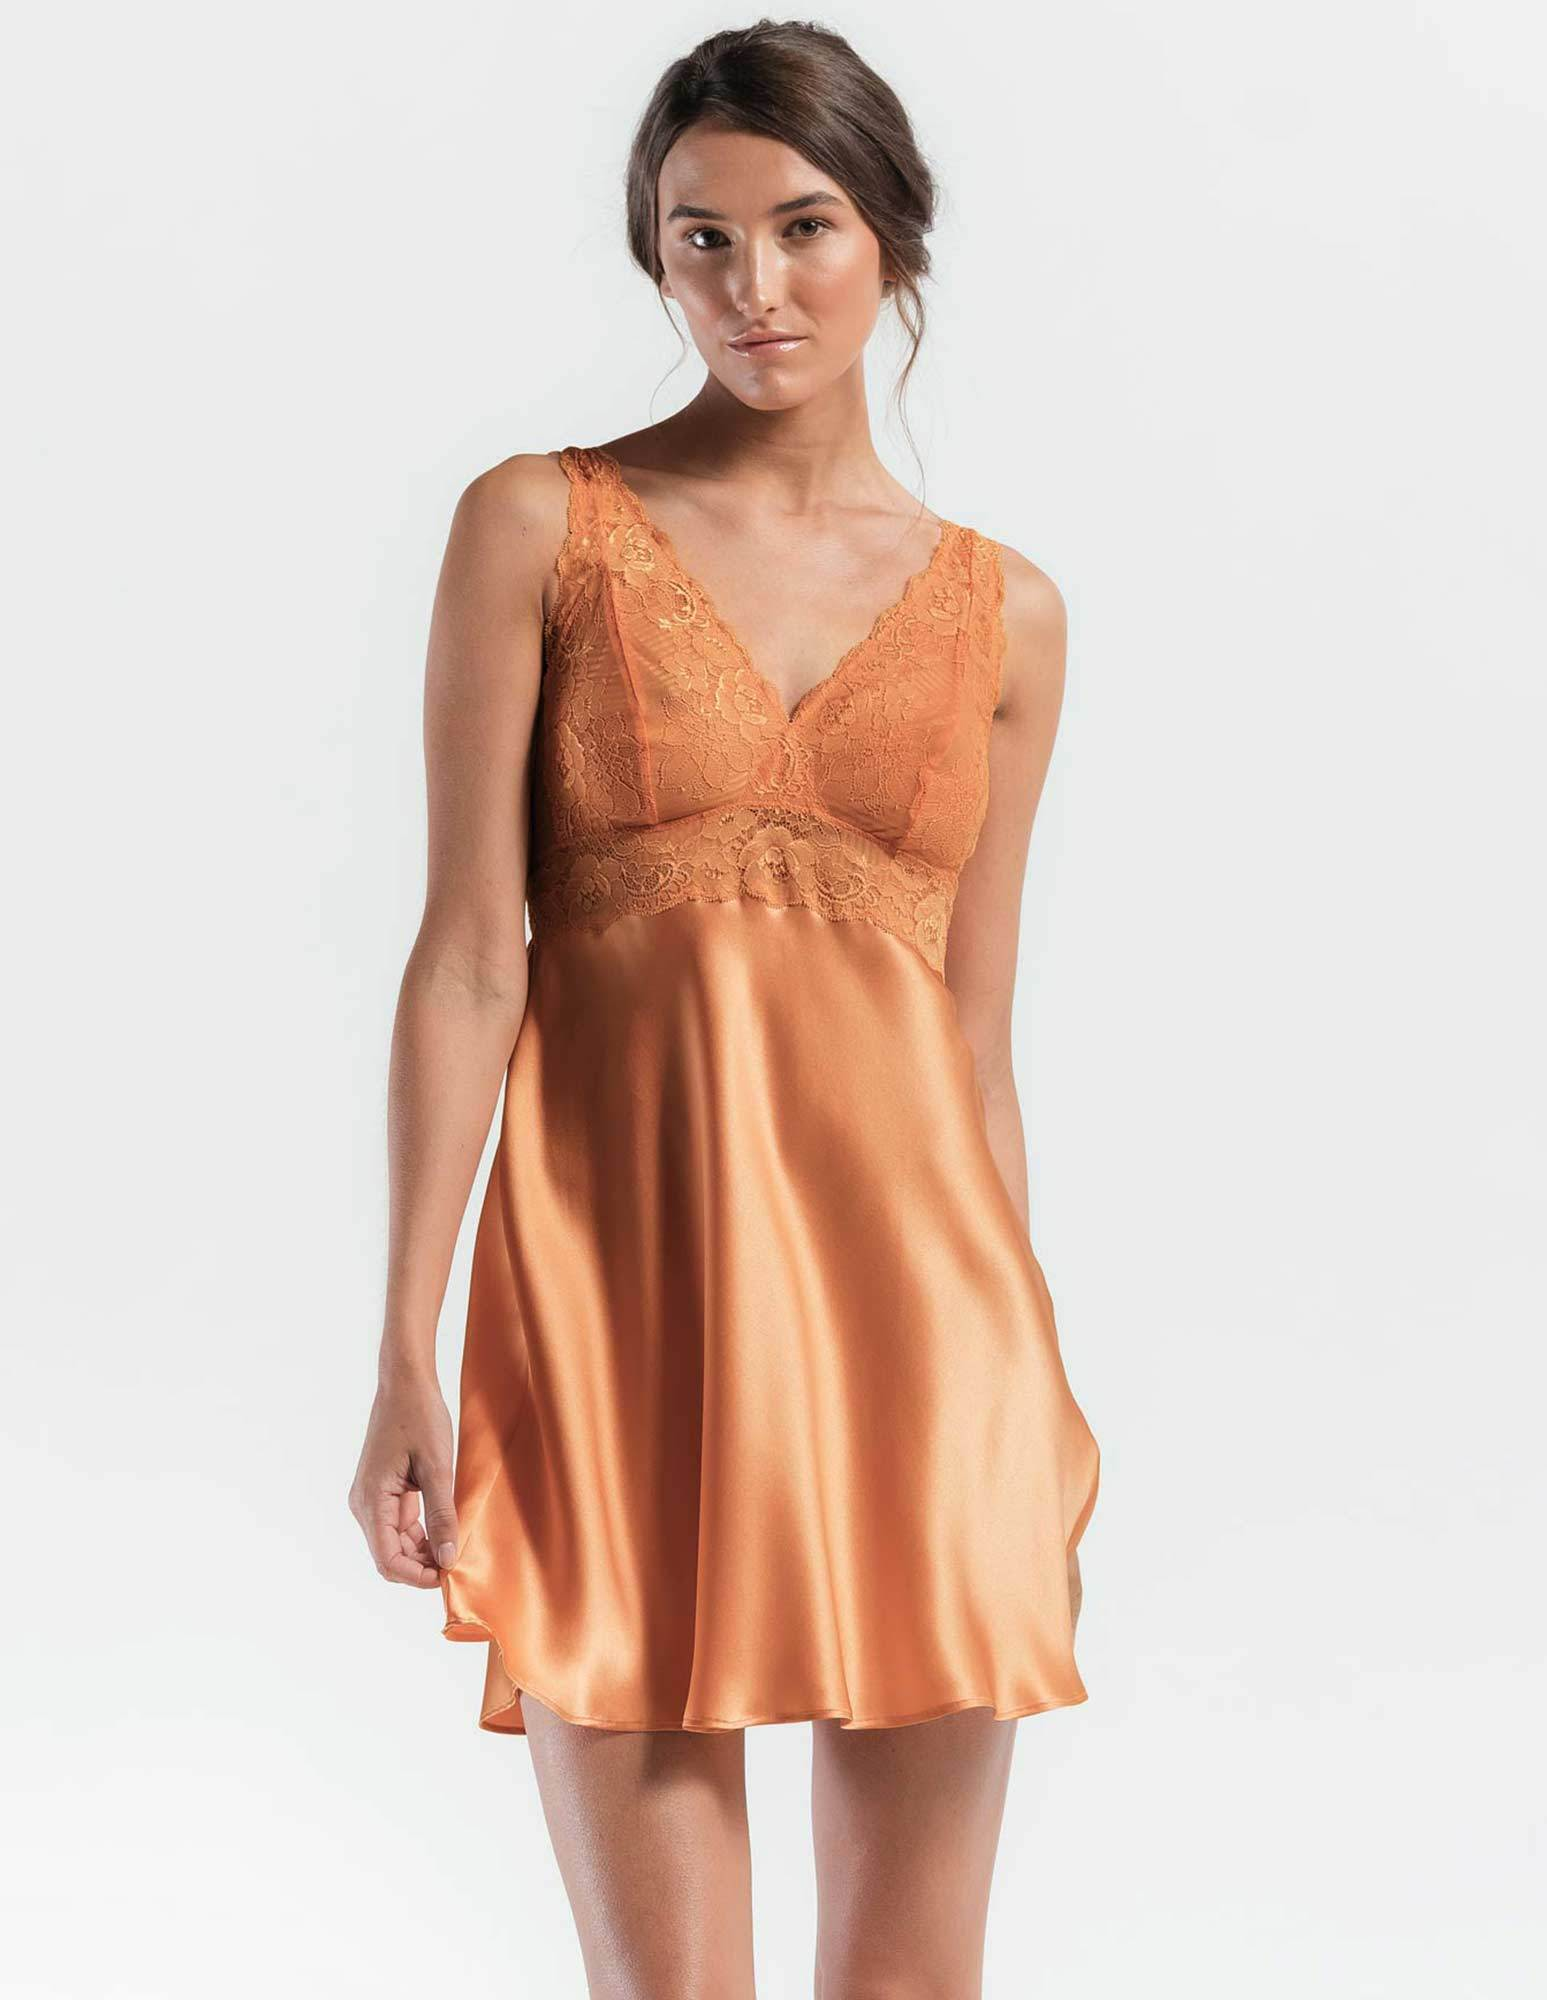 41. Morgan bust support chemise $161. XS-XL. Peach